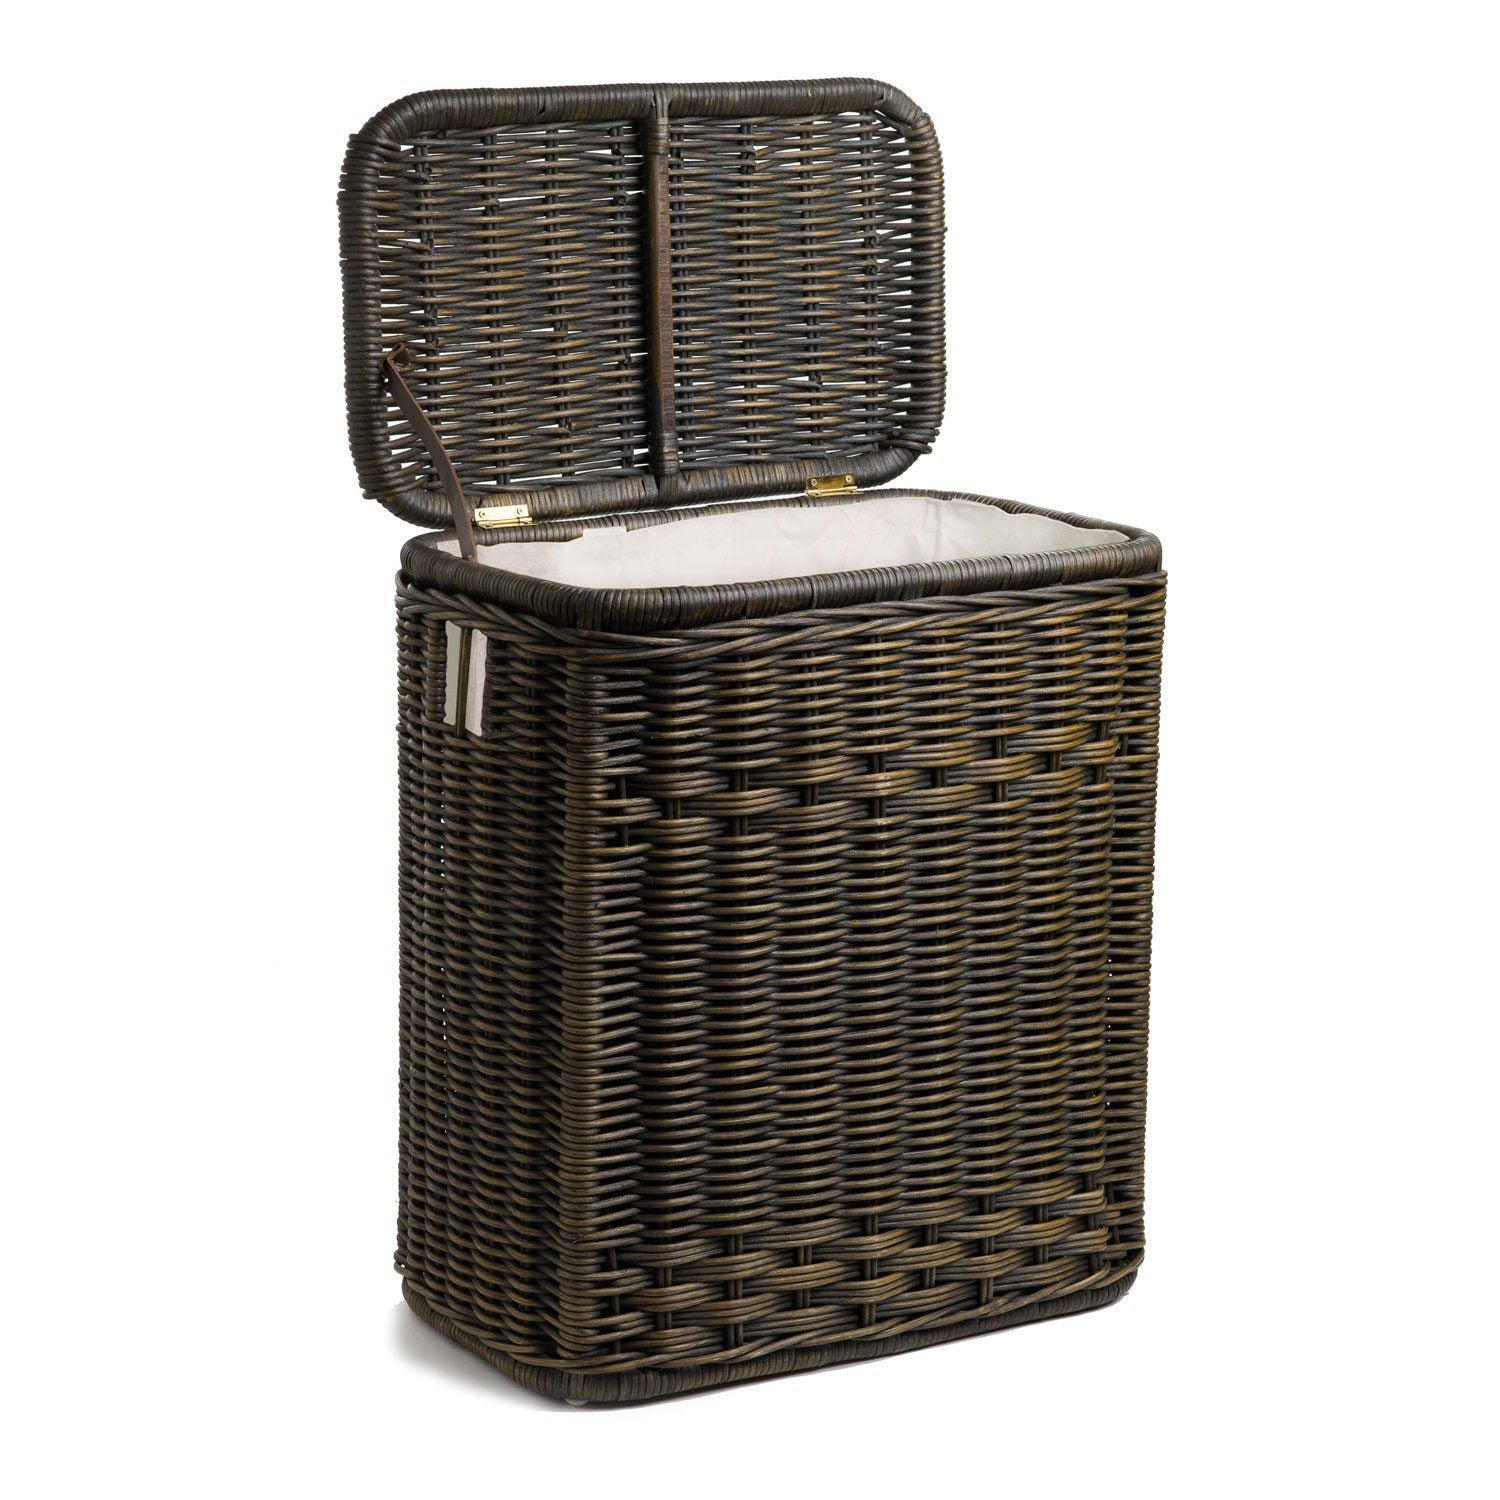 Narrow rectangular lidded wicker laundry hamper the basket lady - Rattan clothes hamper ...